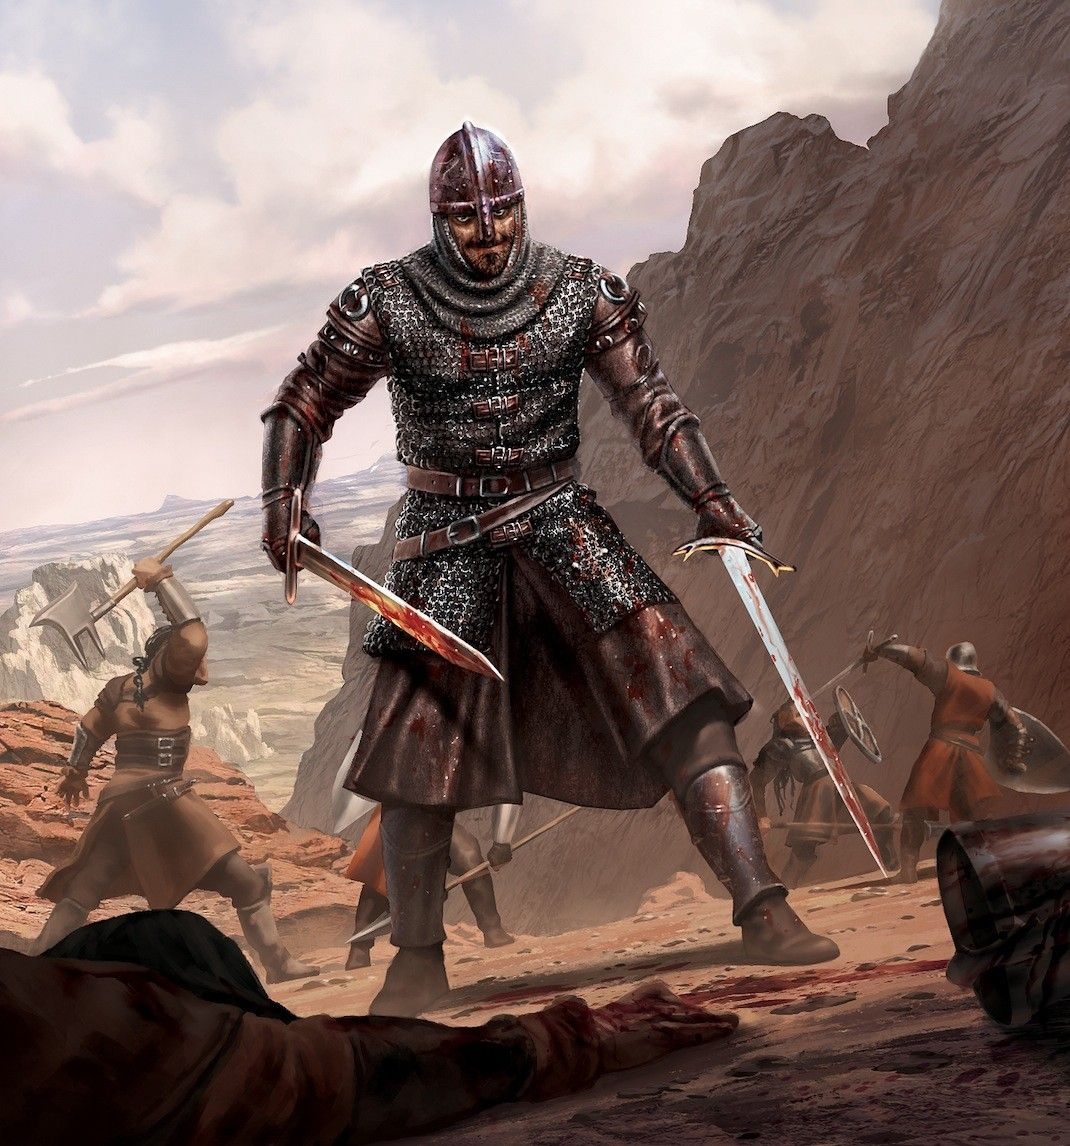 Warriors Fire And Ice Word Count: Bronn Fights The Mountain Clans Of The Vale